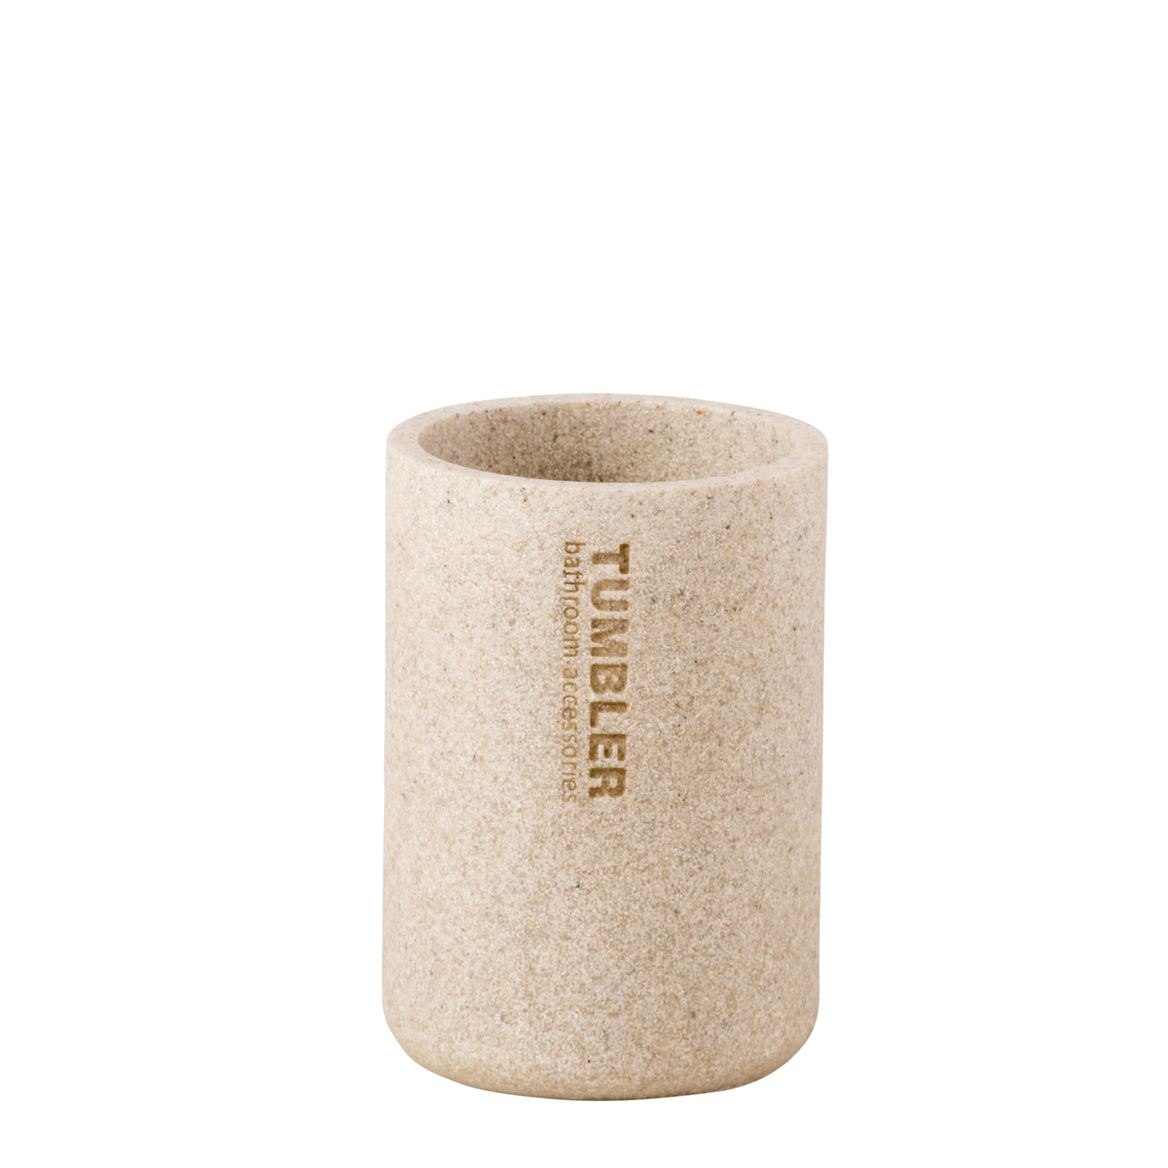 NEW RESIN Vaso natural A 11.5 cm; Ø 7.9 cm_new-resin-vaso-natural-a-11-5-cm;-ø-7-9-cm